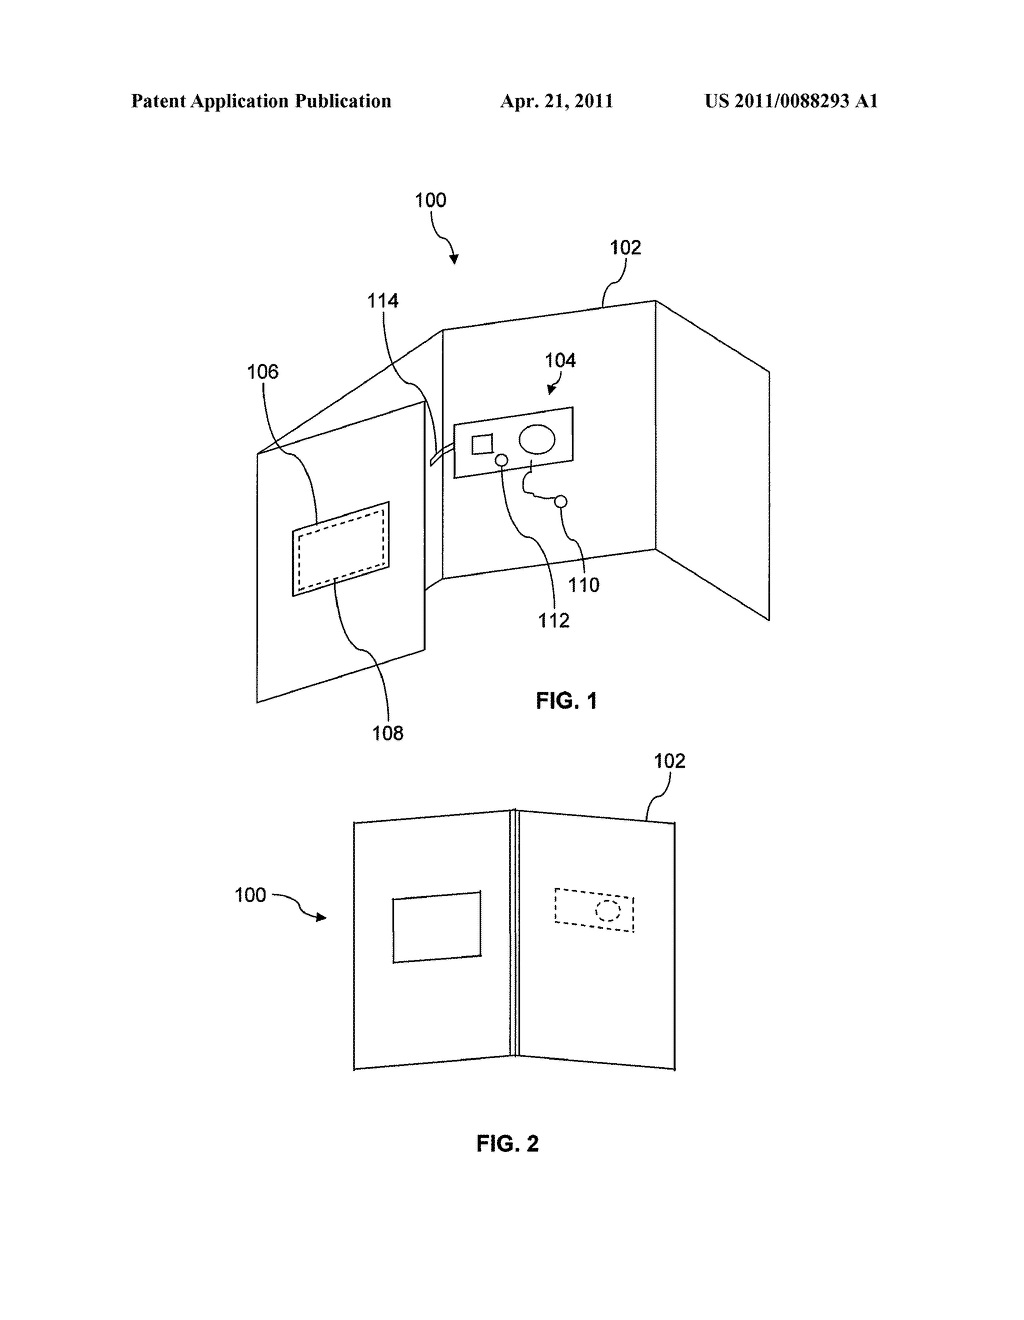 Greeting Card With Recordable Sound Module And Image Retaining